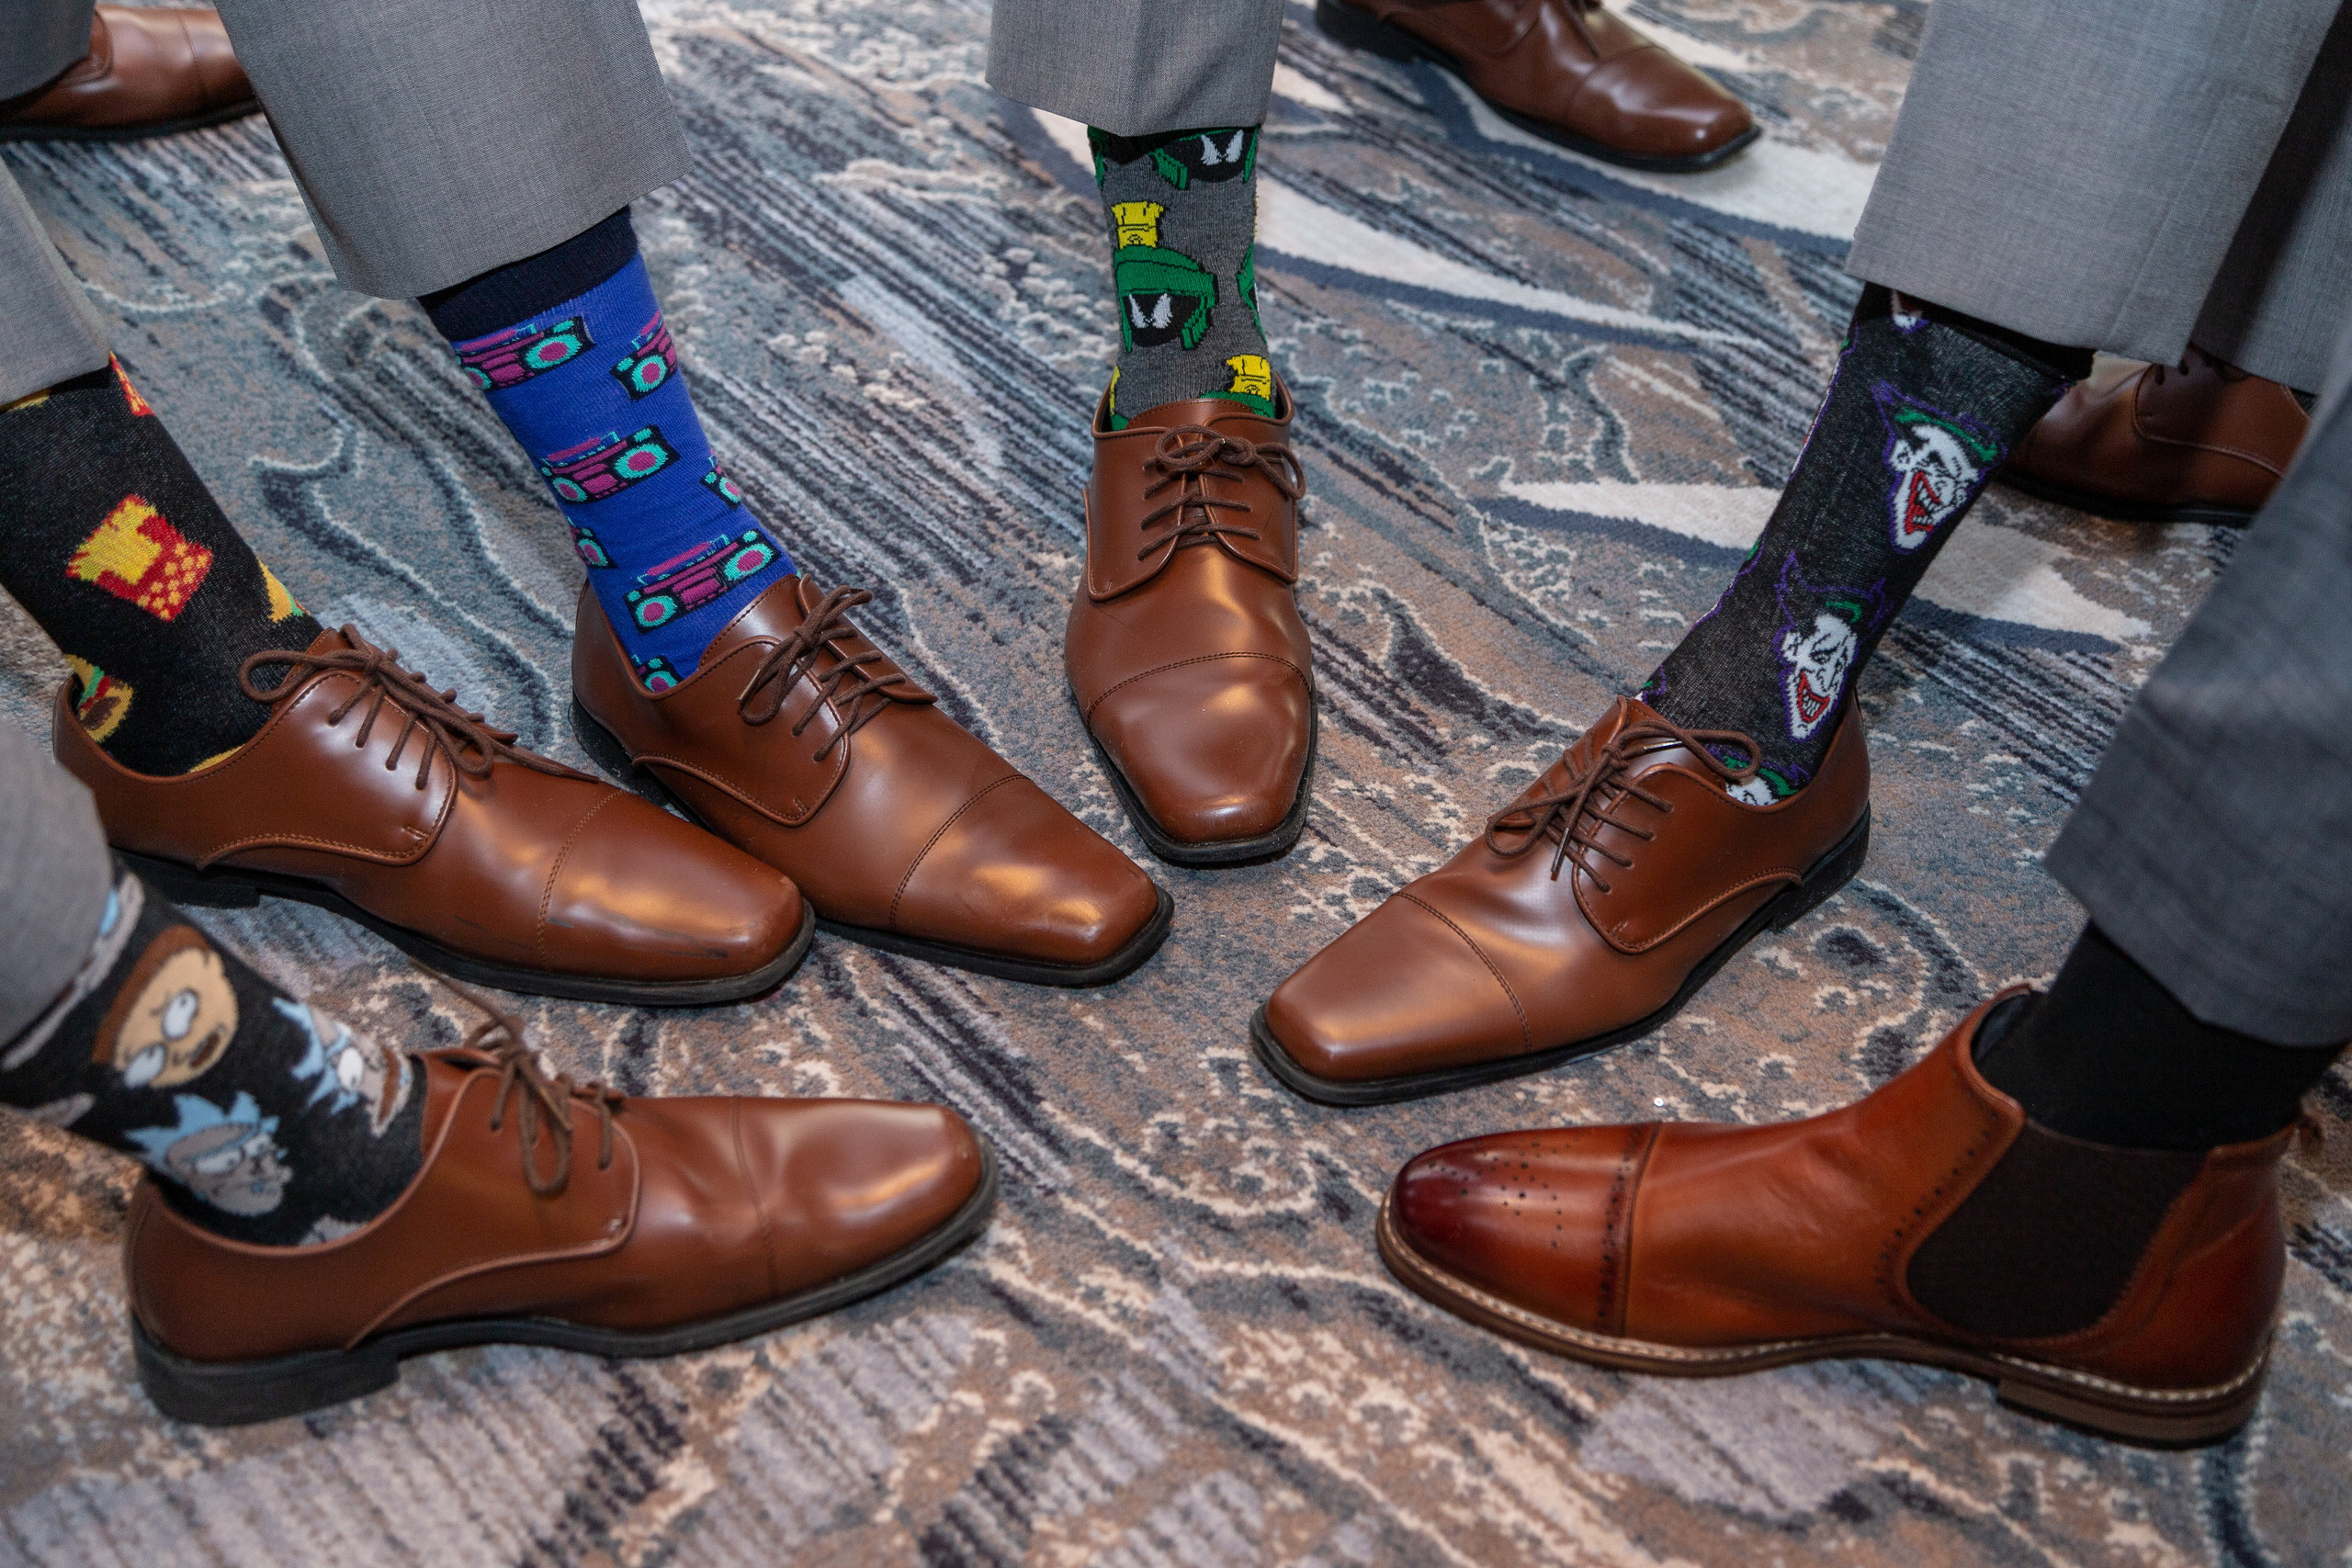 The groom and his groomsmen showing off their fun socks before the wedding at the Hilton Main in Norfolk, Virginia.